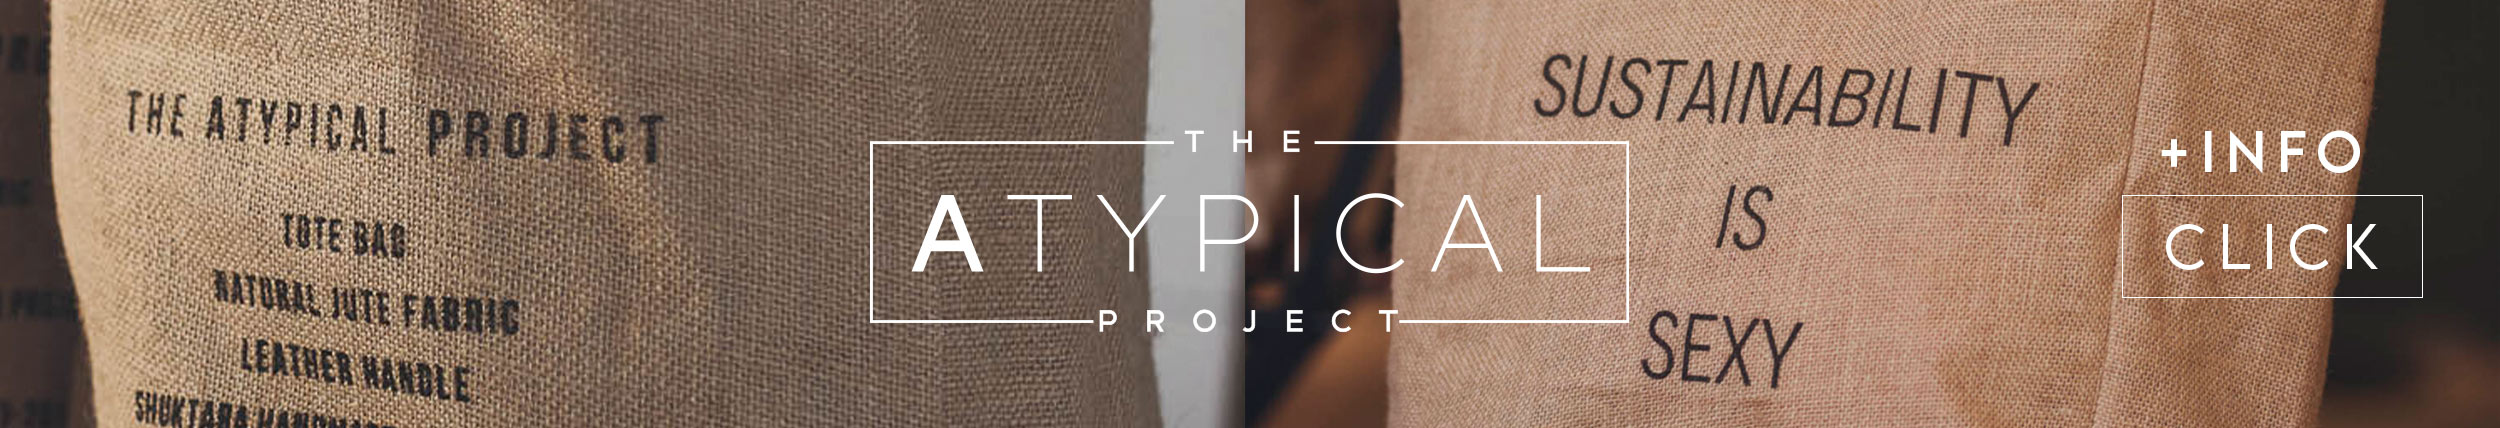 The Atypical Project